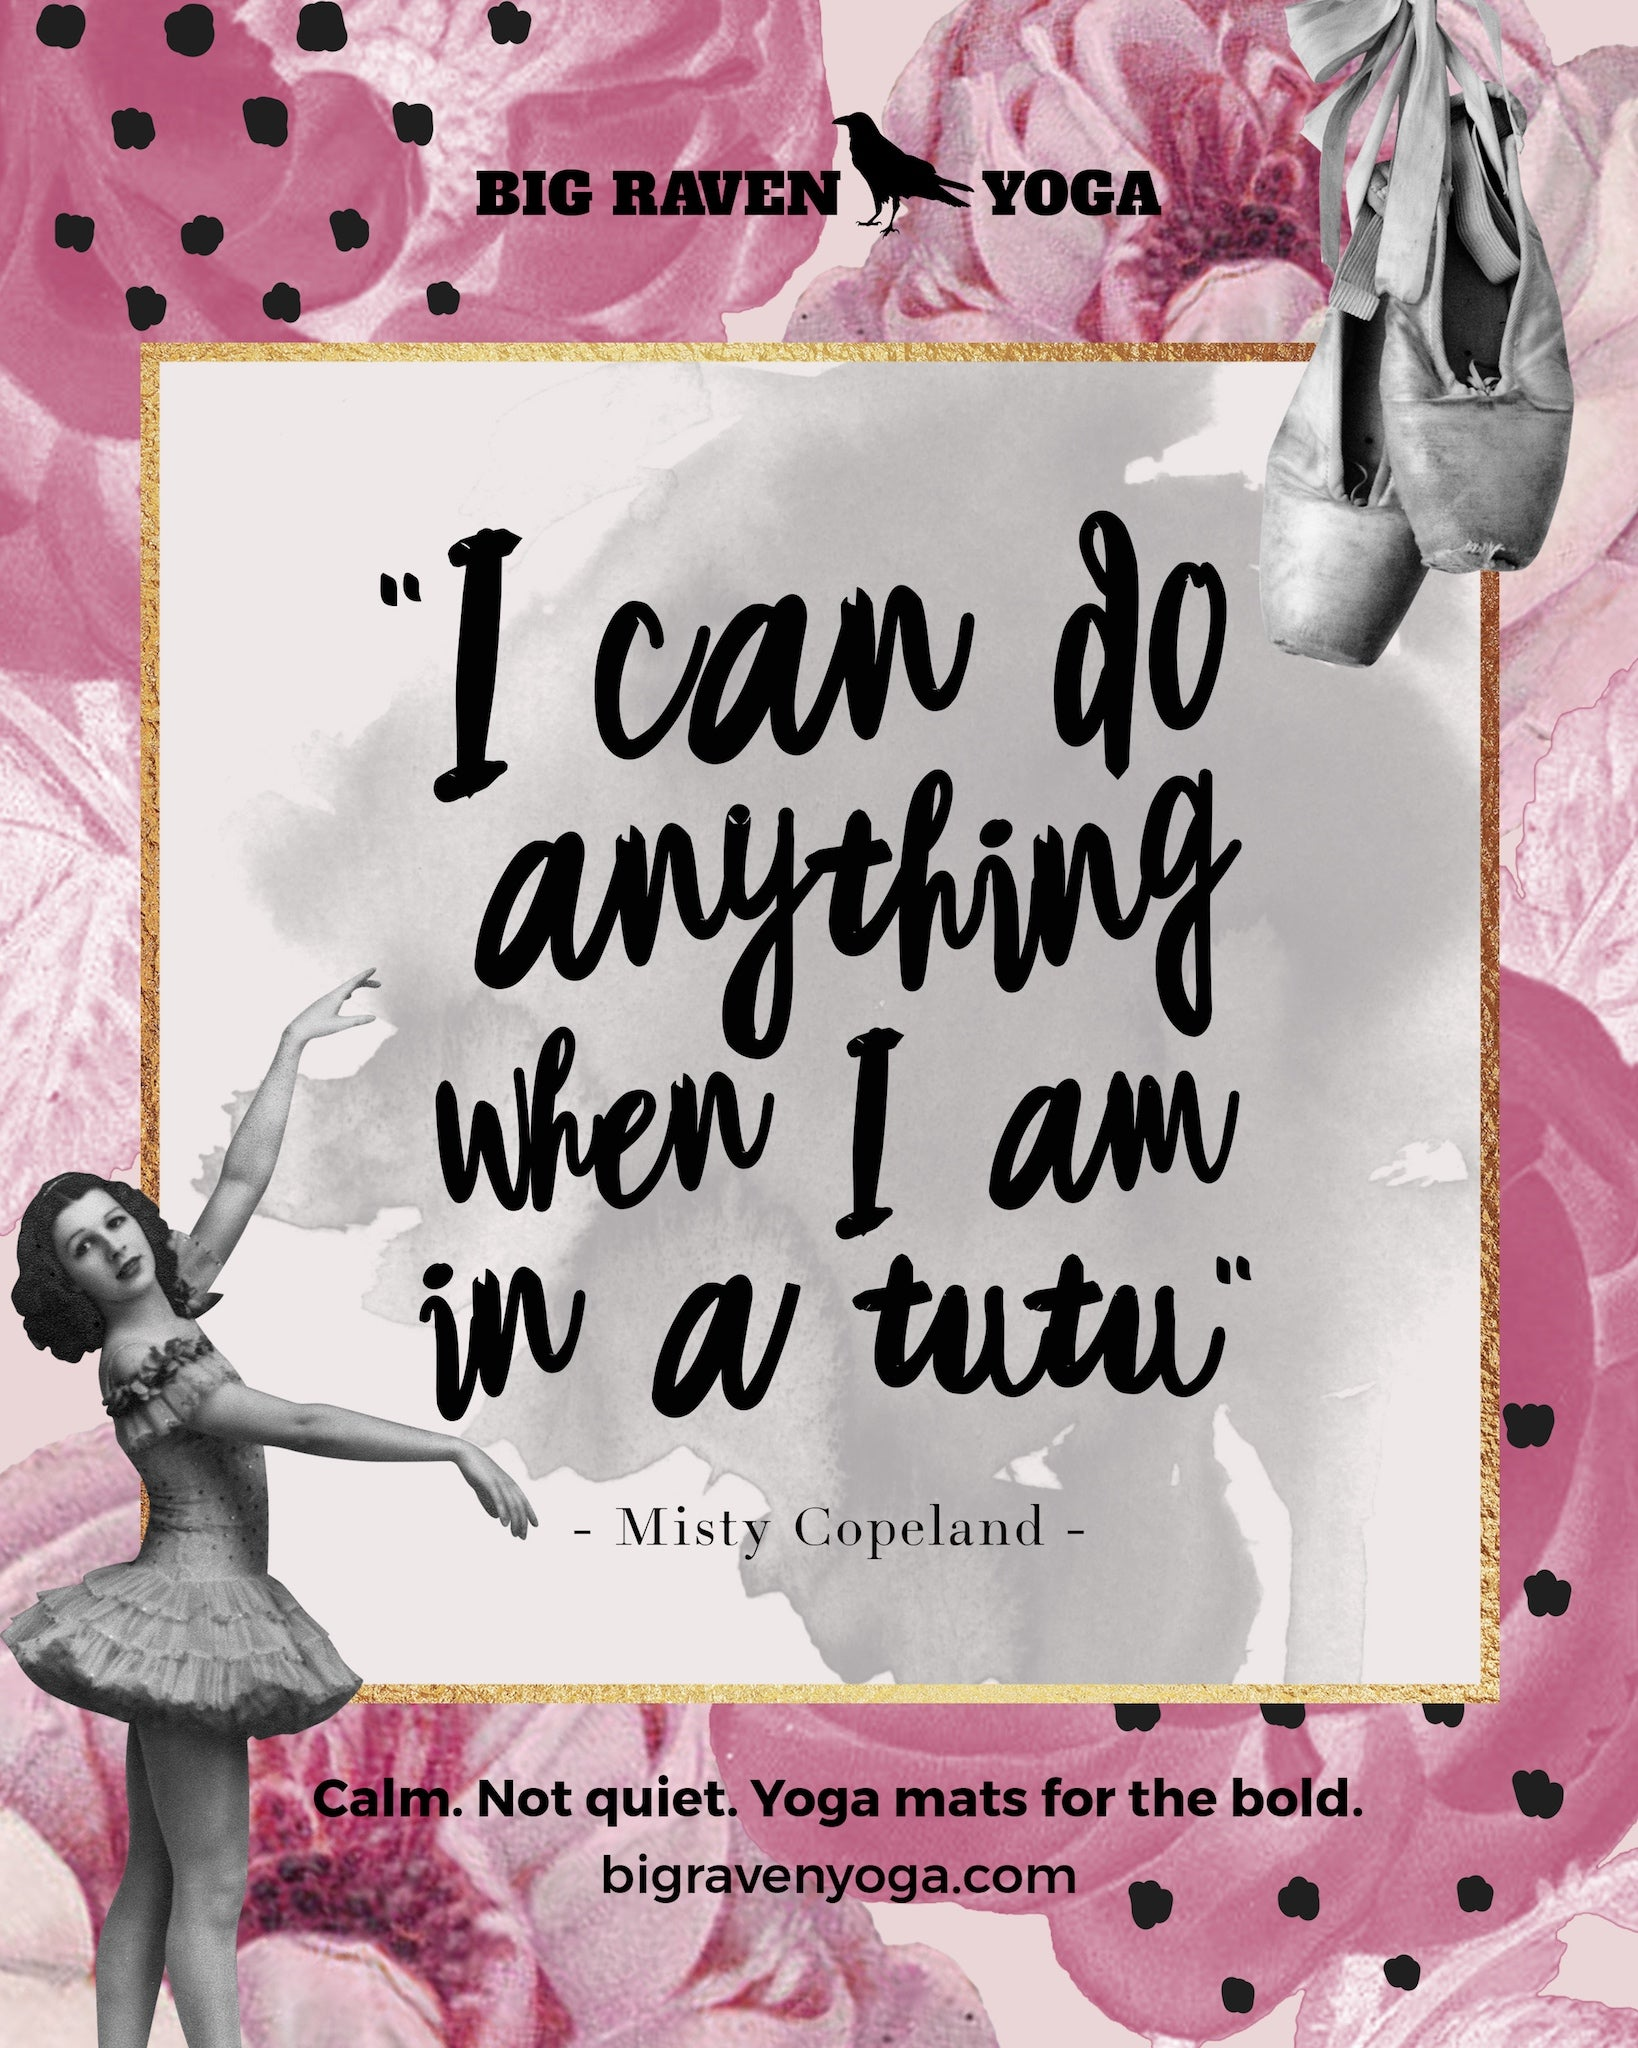 Quote: I can do anything when I am in a tutu. Misty Copeland